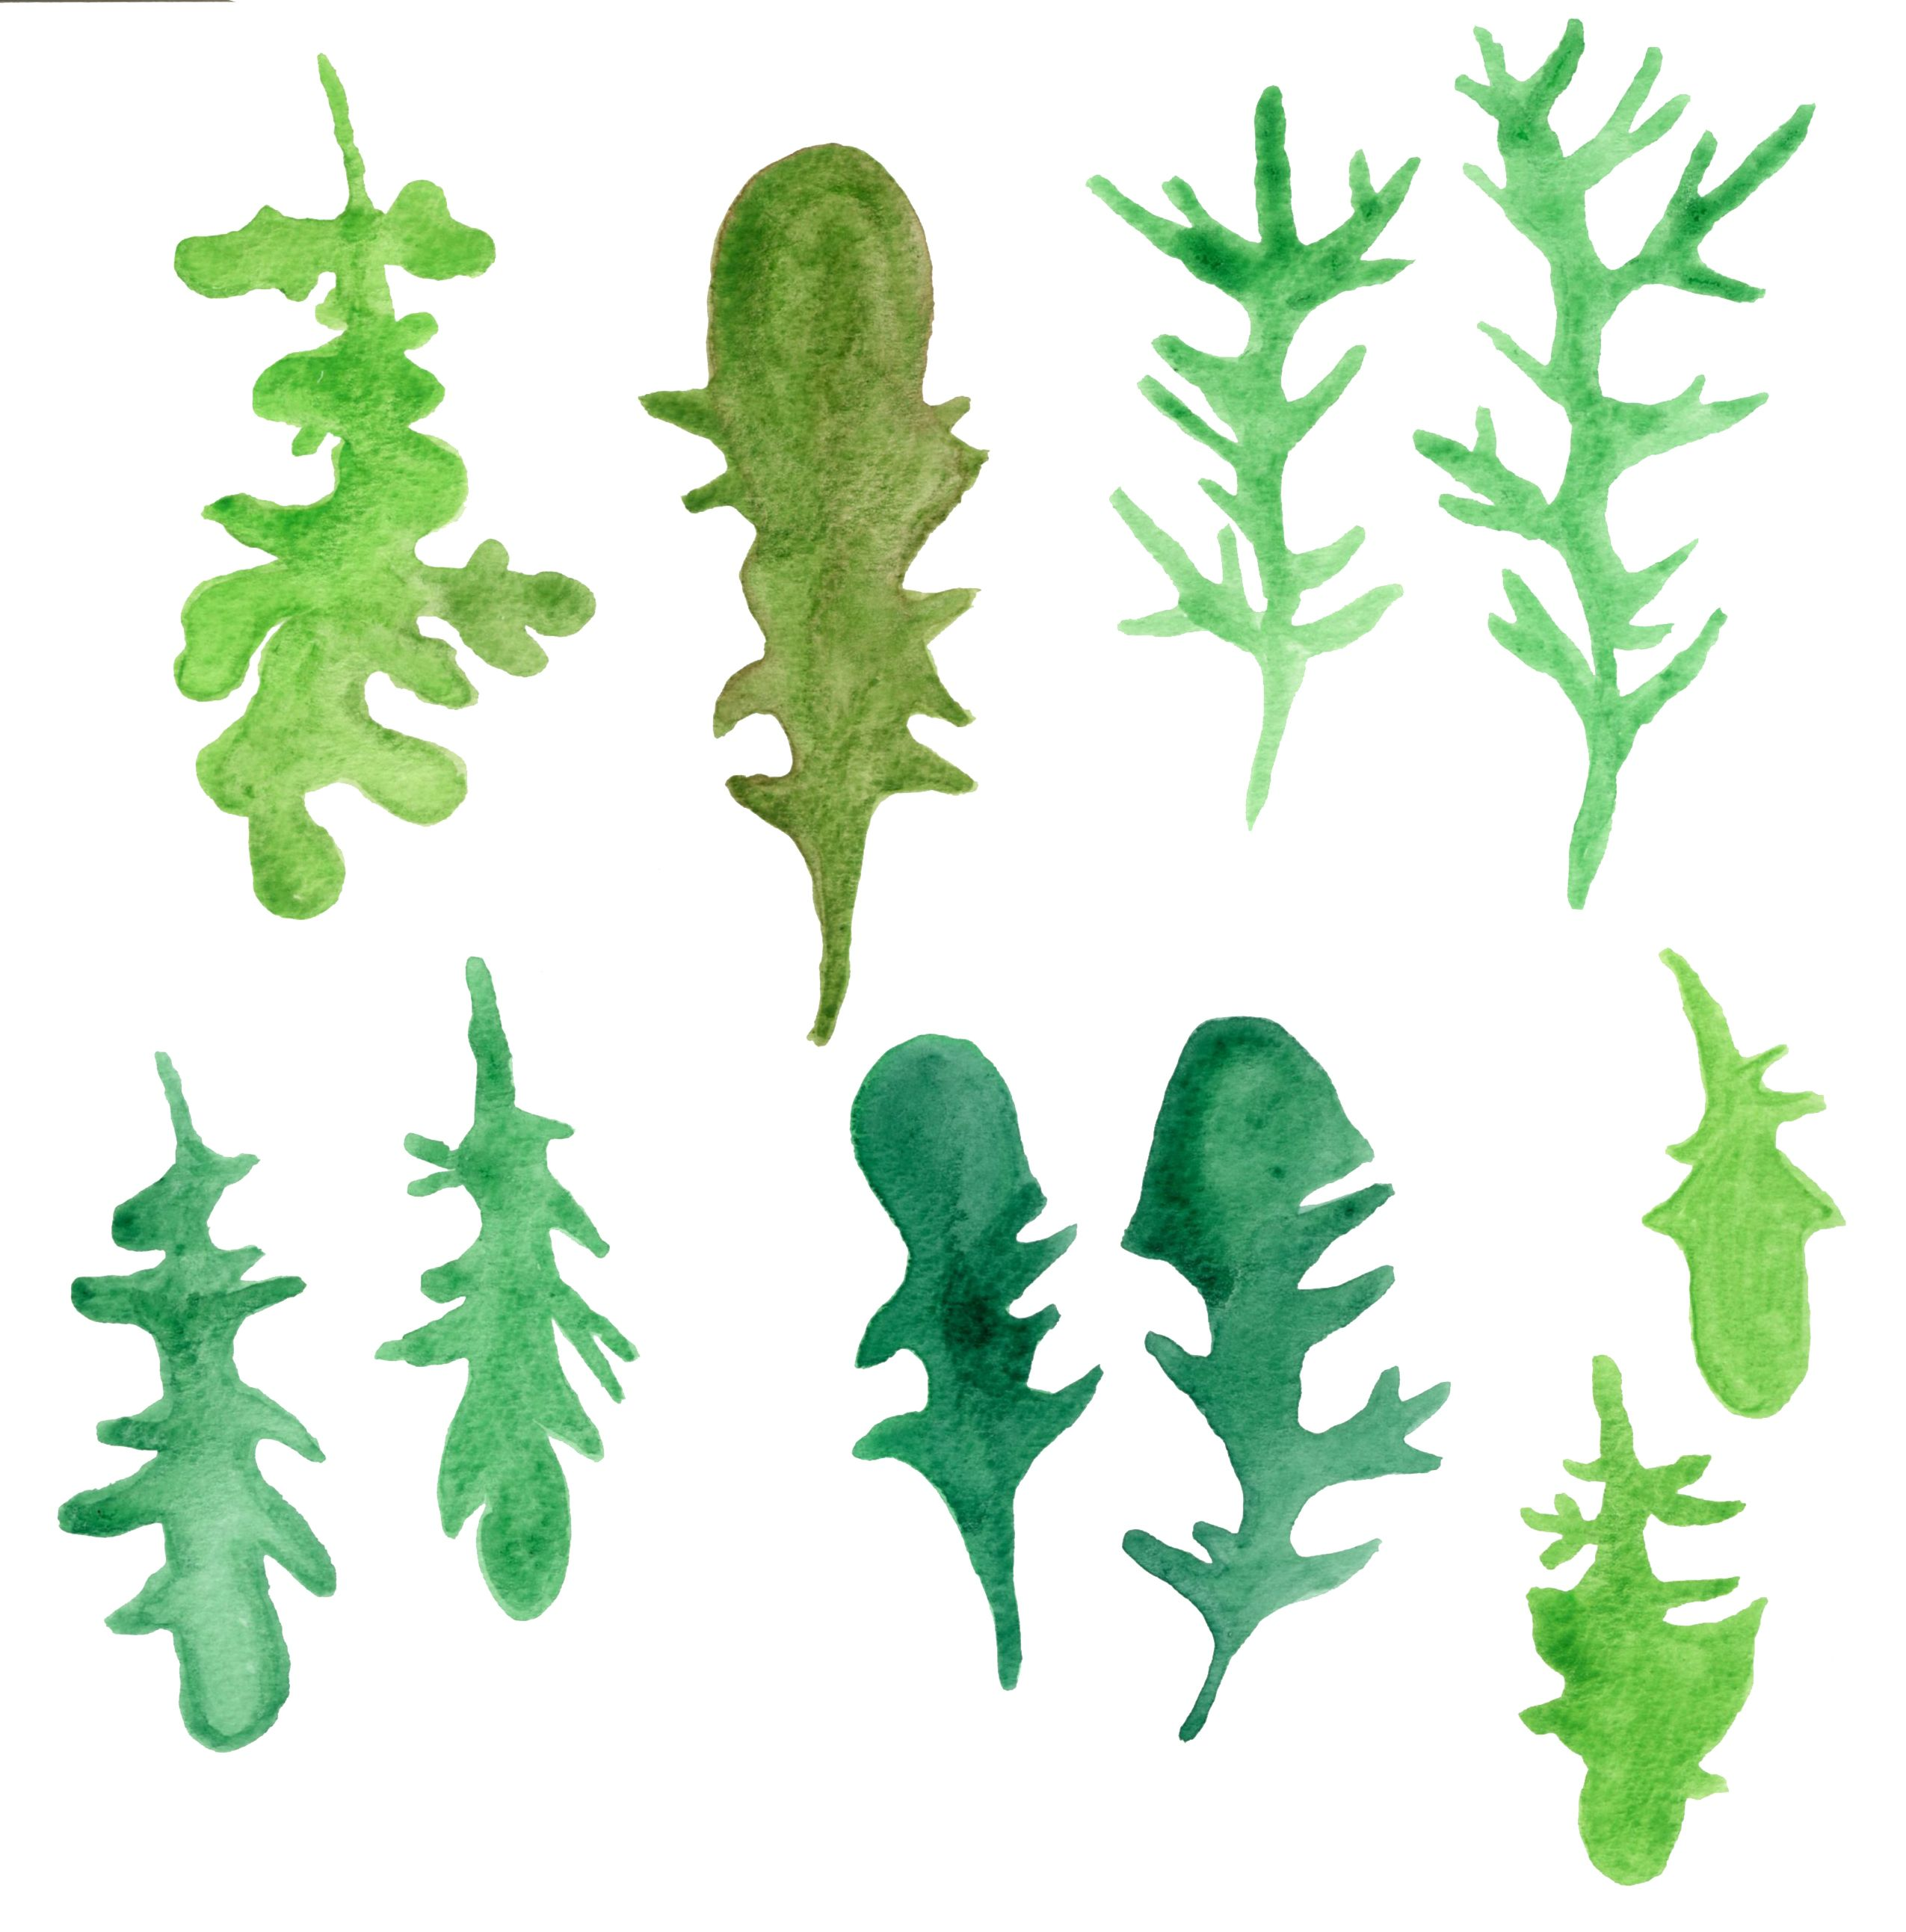 arugulas | Illustrating Foragers | Pinterest | Project ideas and ...